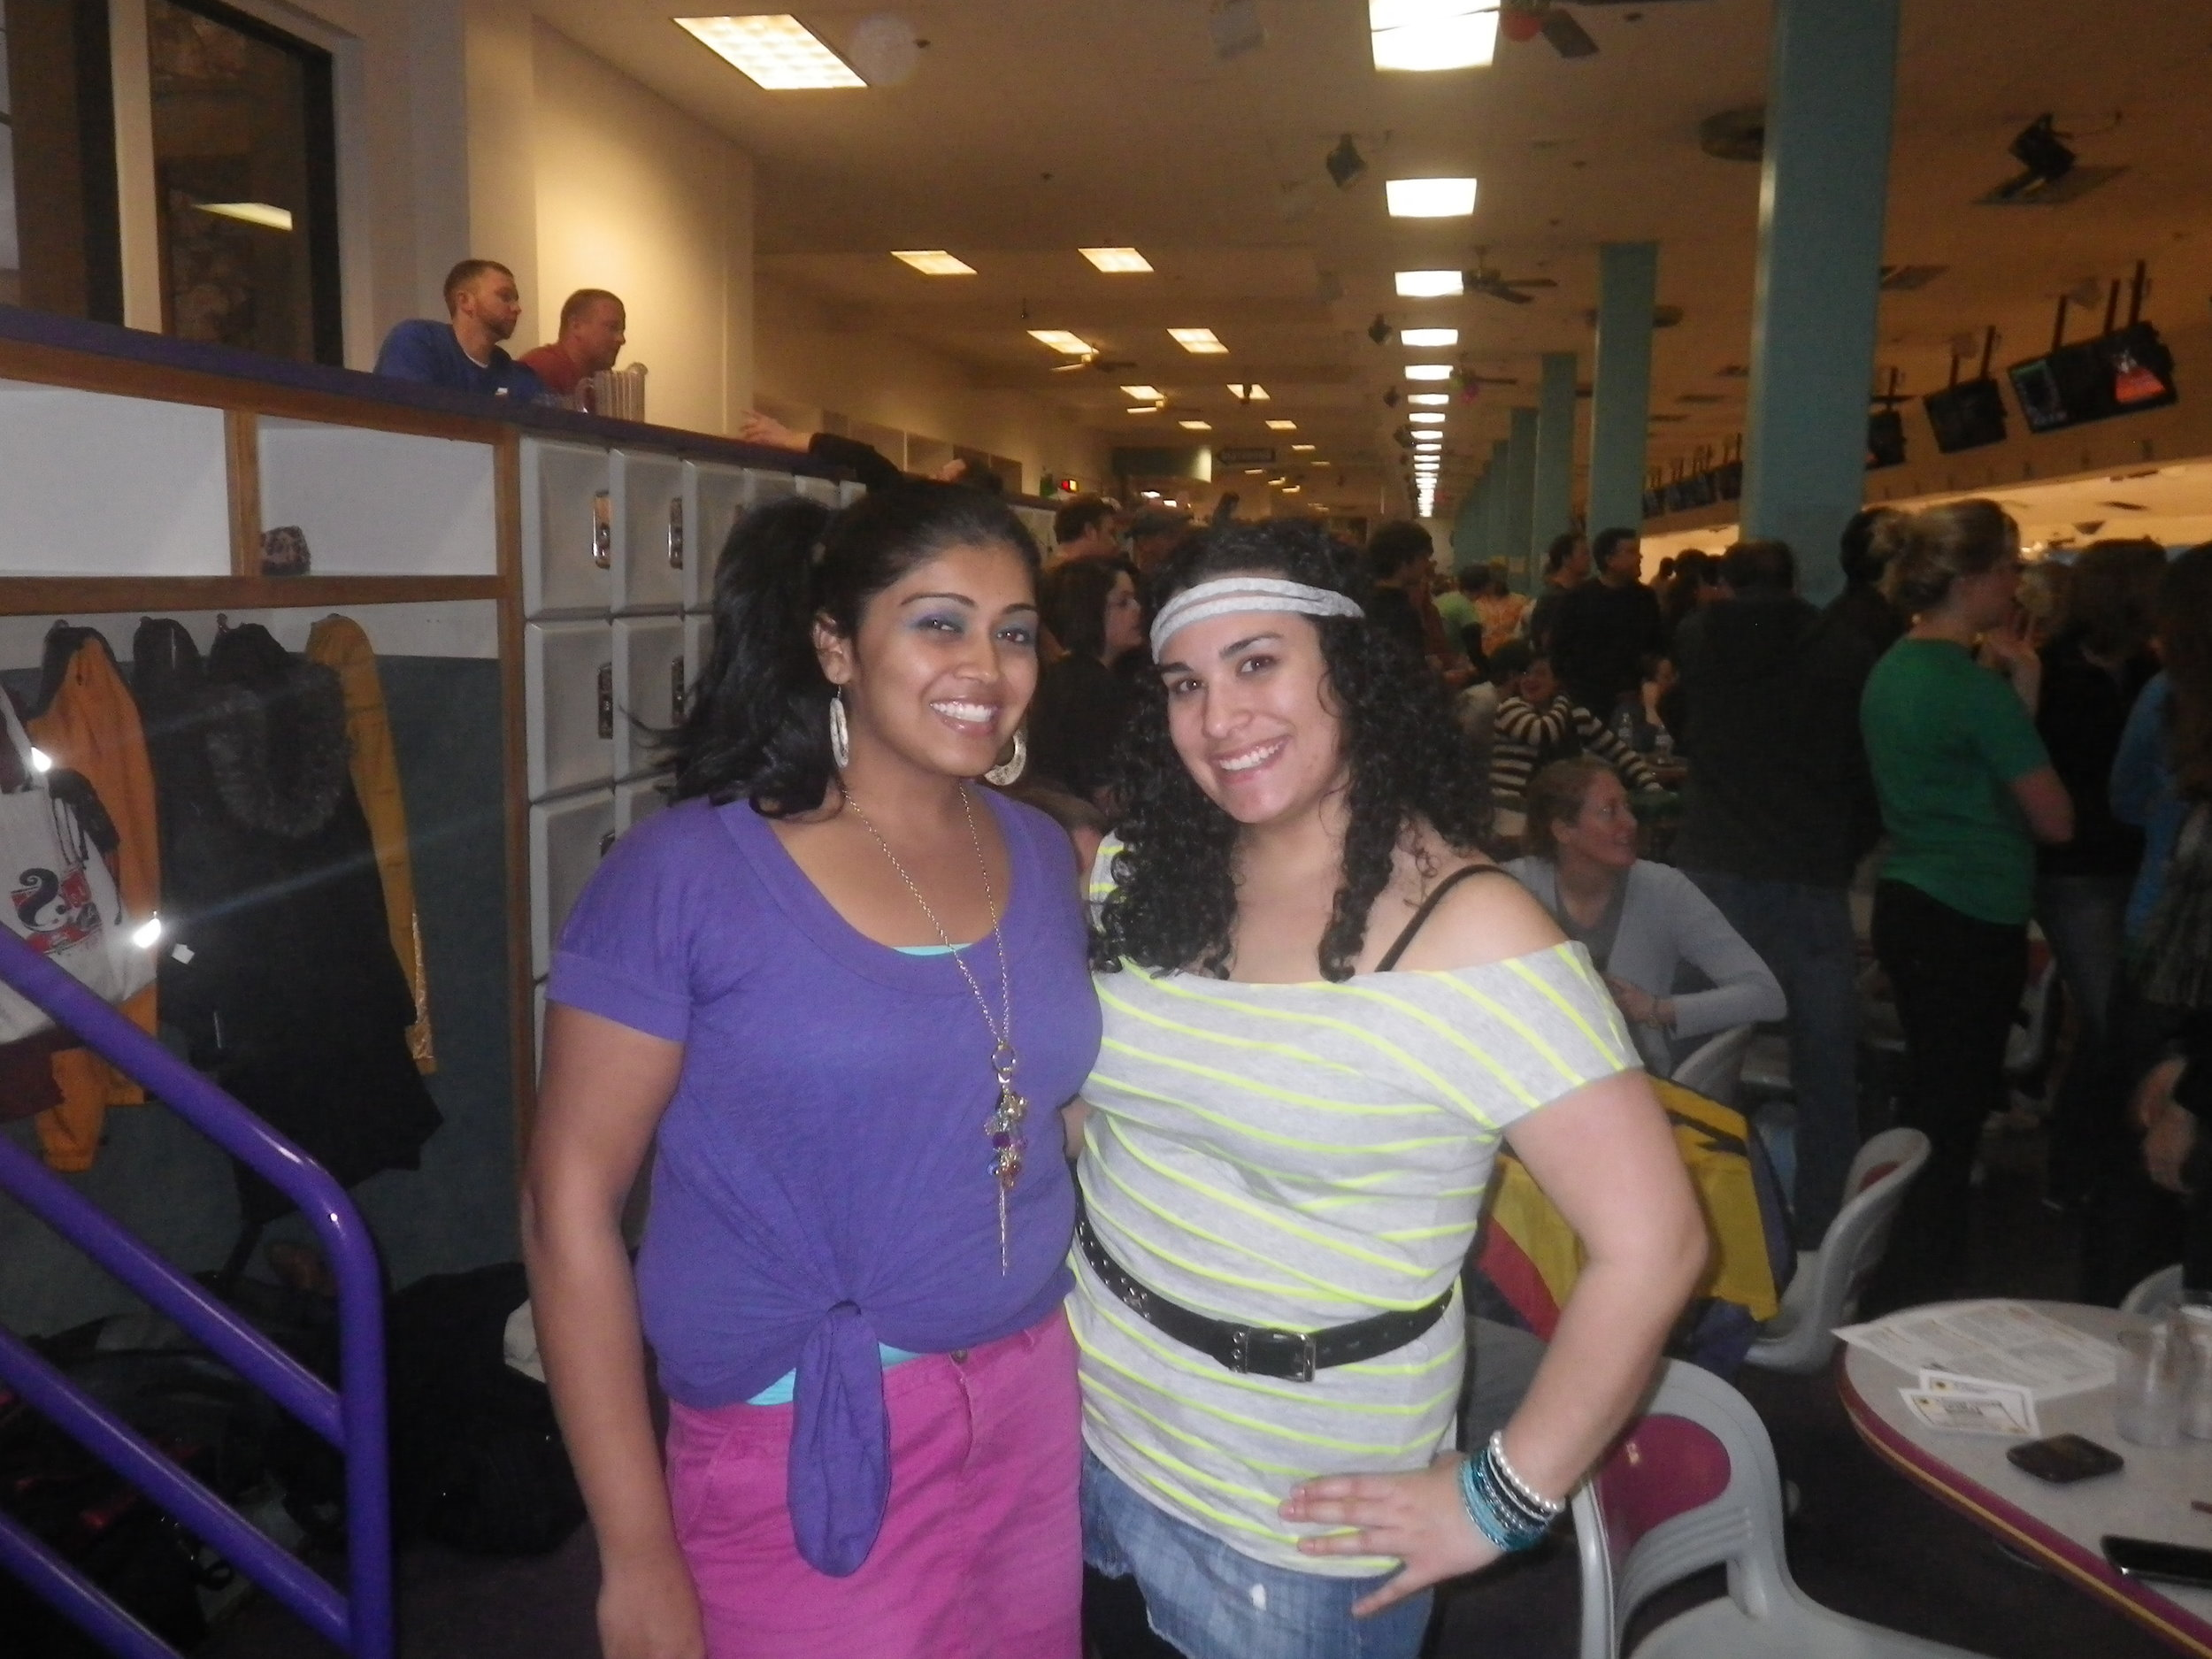 Dressed up for 80s night during our bowling league